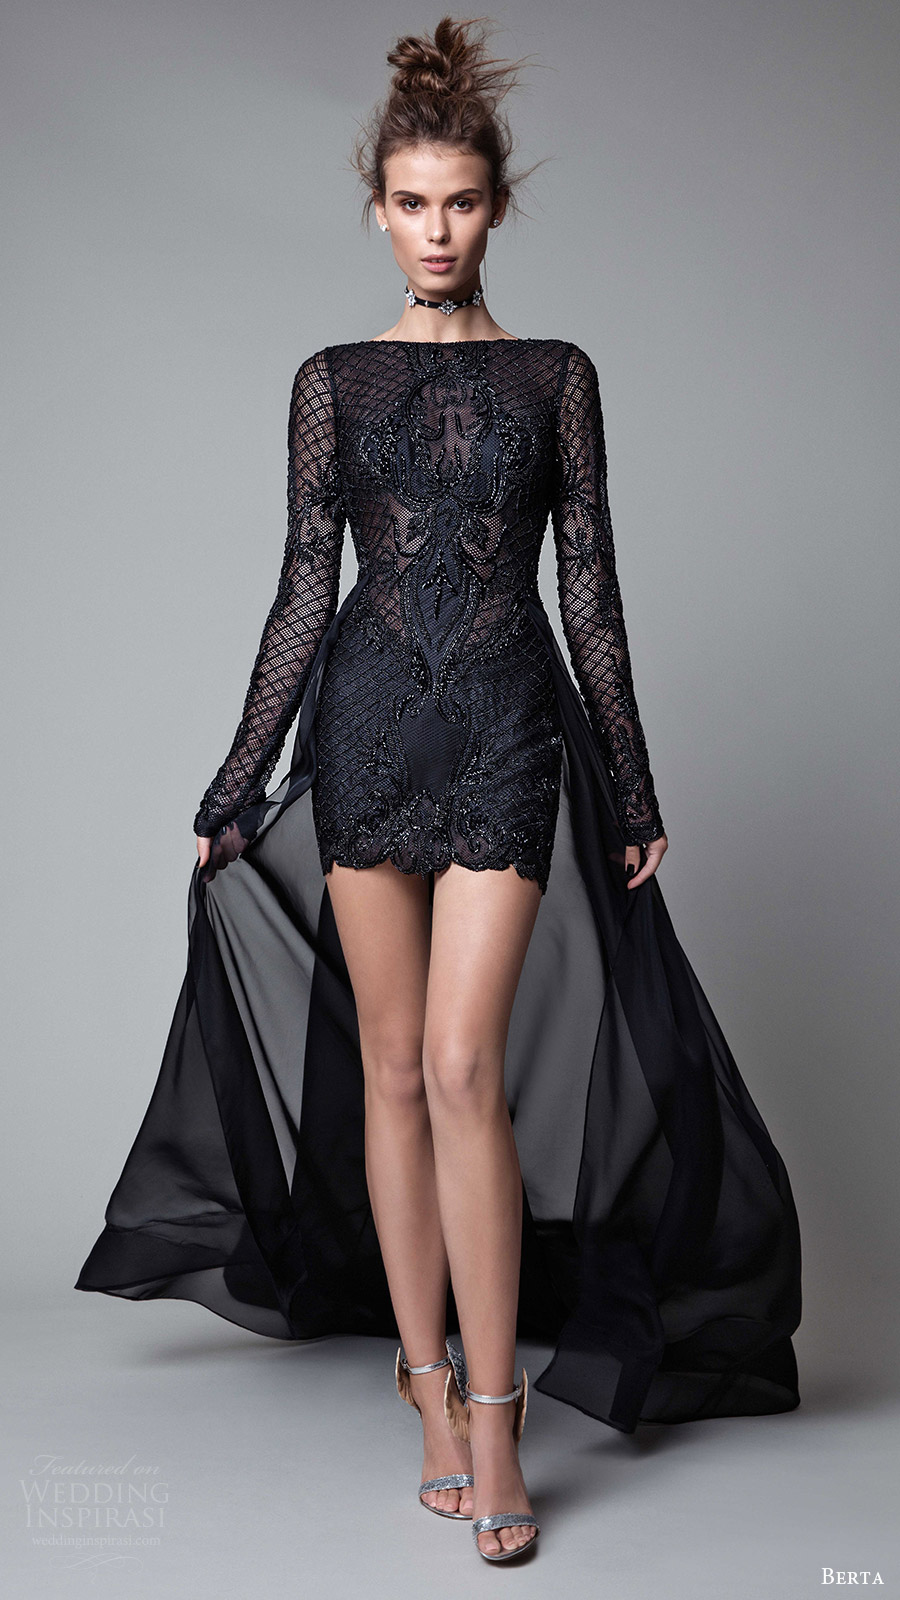 berta rtw fall 2017 (17 04) illusion long sleeves neck bateau neck mini short evening dress mv